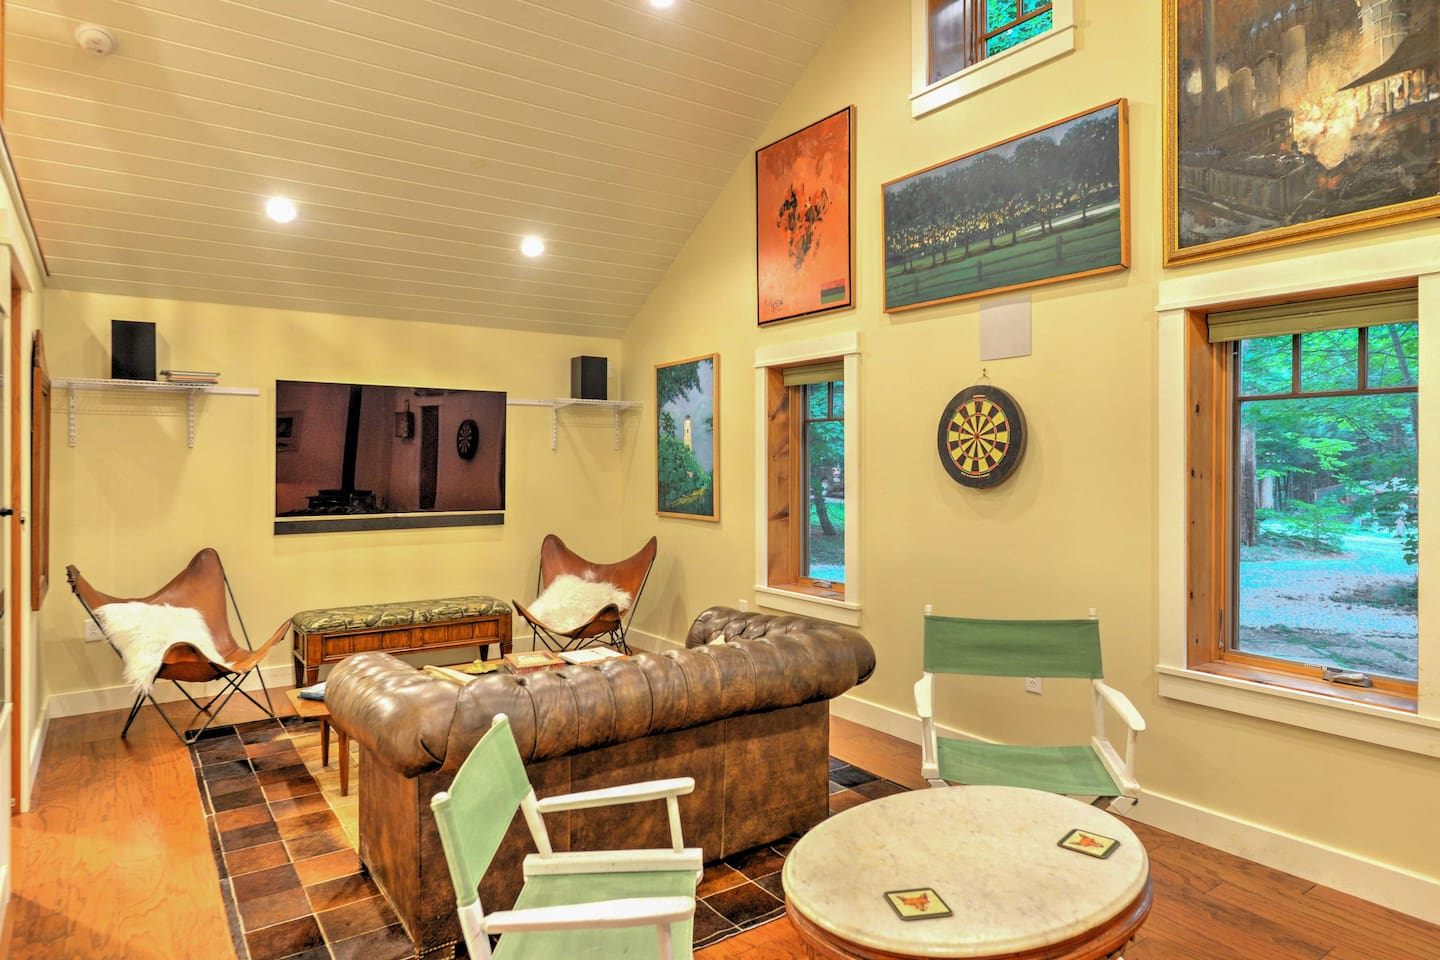 This is the perfect home base for up to 4 lucky guests visiting Laughlintown!